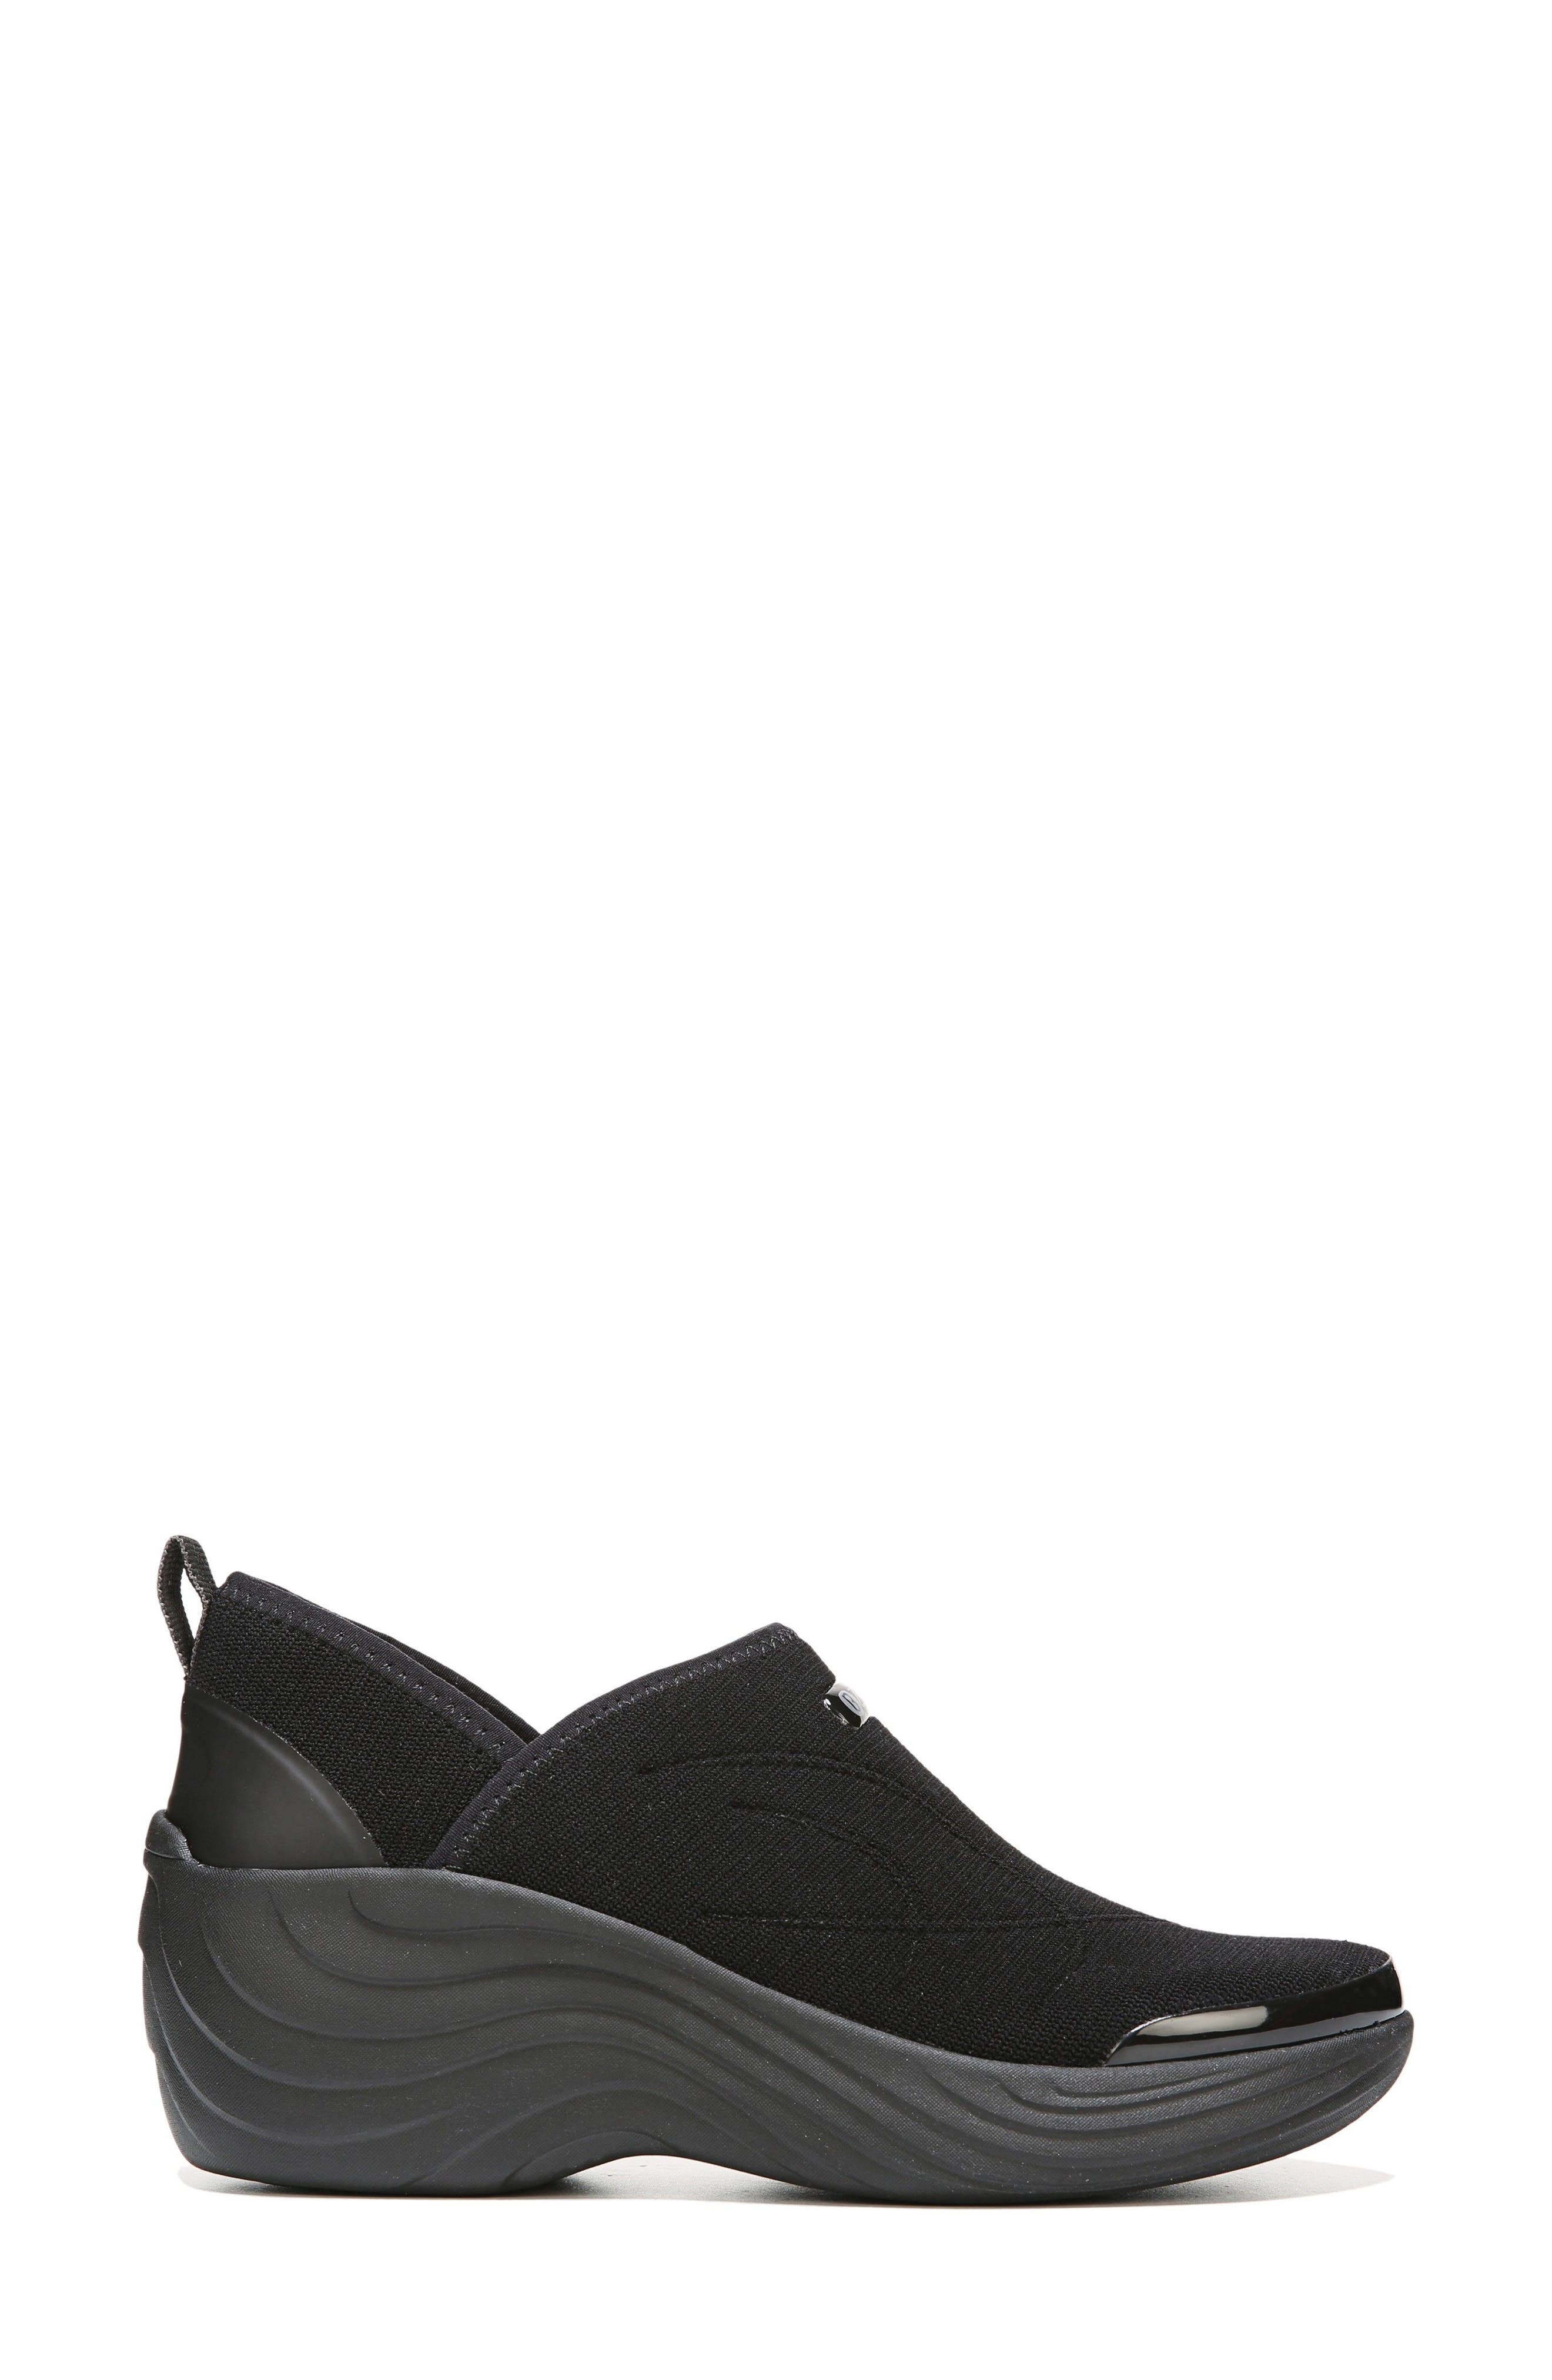 Zsa Zsa Wedge Sneaker,                             Alternate thumbnail 3, color,                             Black Fabric